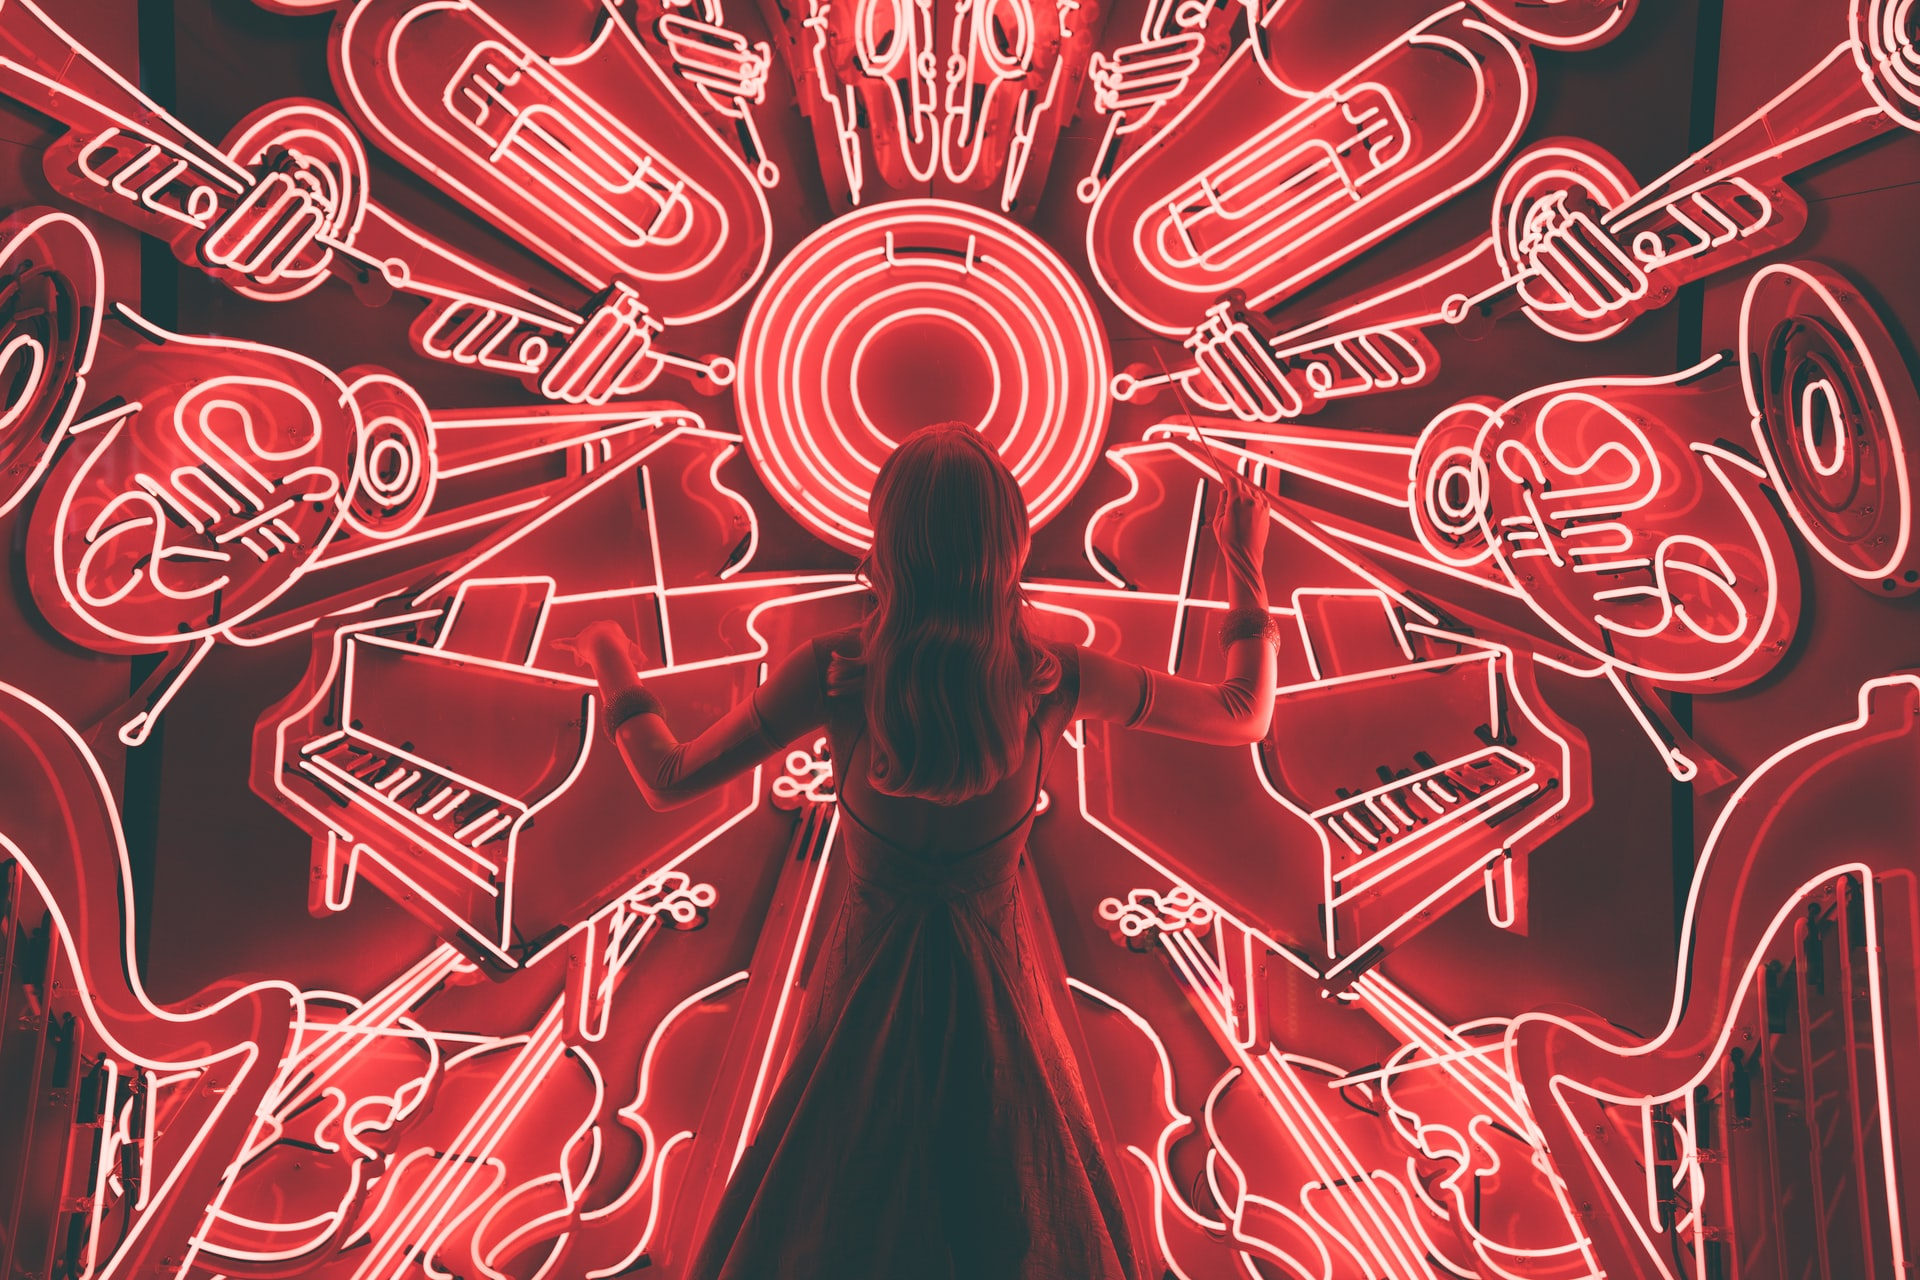 Girl composing music in front of an array of neon instruments